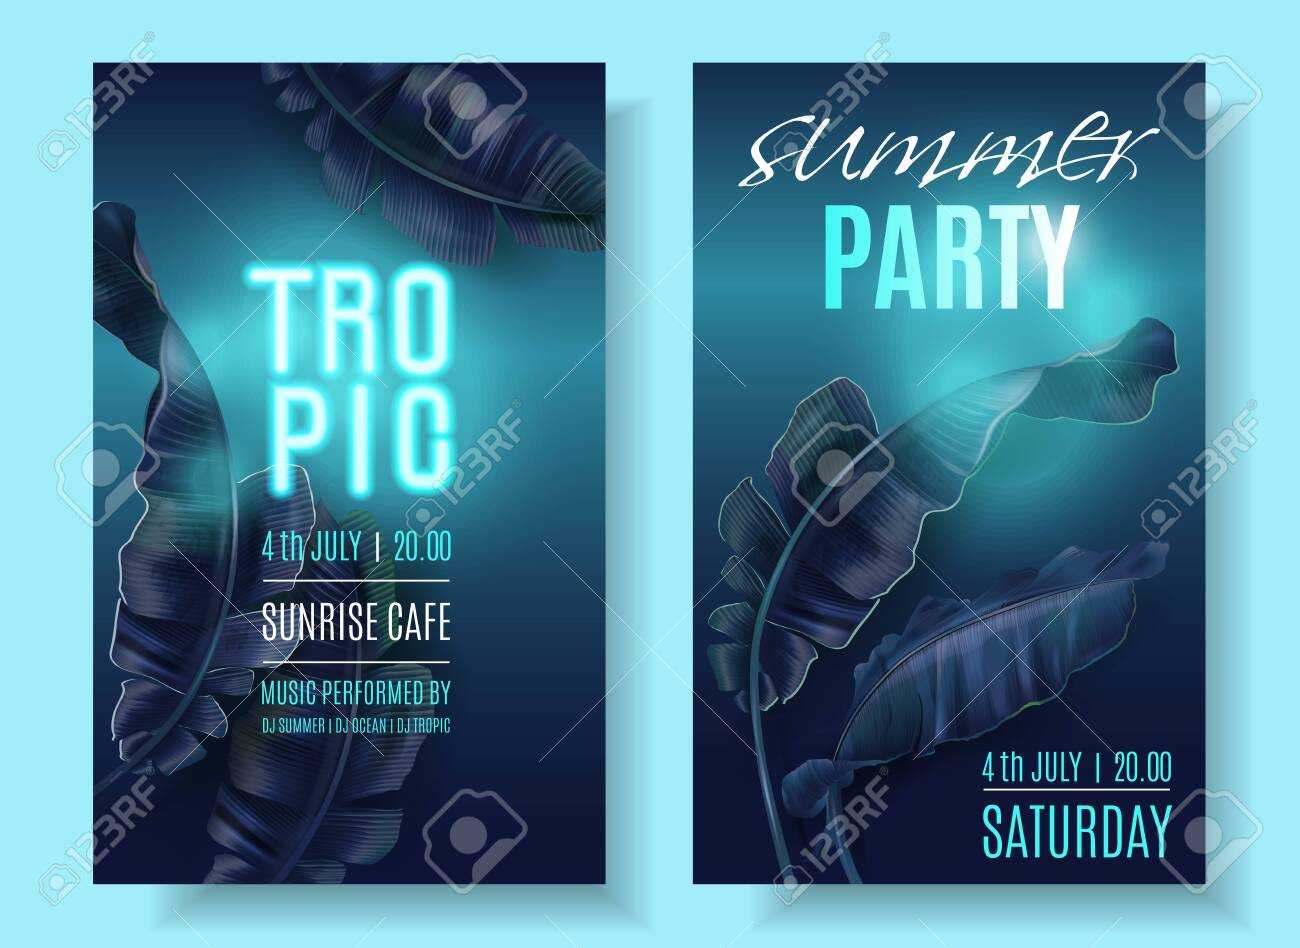 Vector tropical banner set with blue banana leaves and turquoise neon letters on dark blue background. Exotic design for night music party, beach event invitation, dance party, sale, cosmetics flyer - 139834072